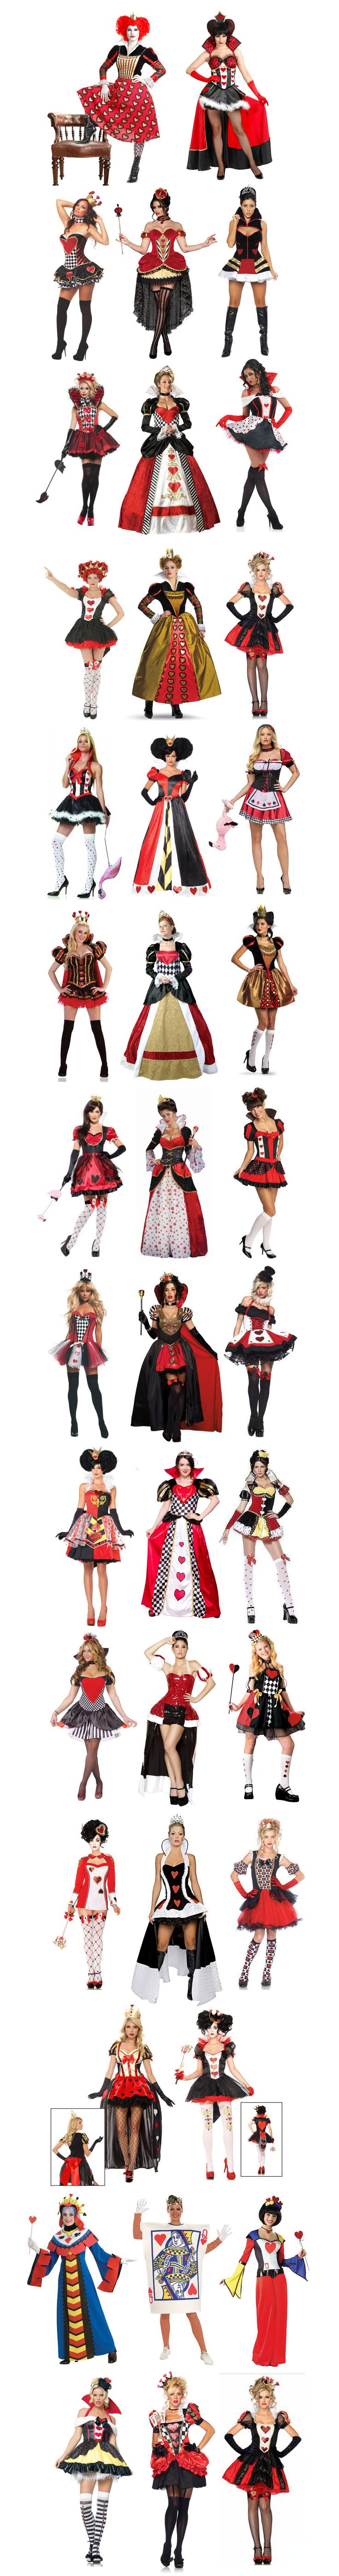 The Queen of Hearts.  She may not be the most popular Disney Villain, but she definitely has the most Halloween costumes!  Here are forty -- that's right --- FORTY different Queen of Hearts costumes -- and there are more out there! Disney Villains Halloween Theme Party & Decoration Ideas